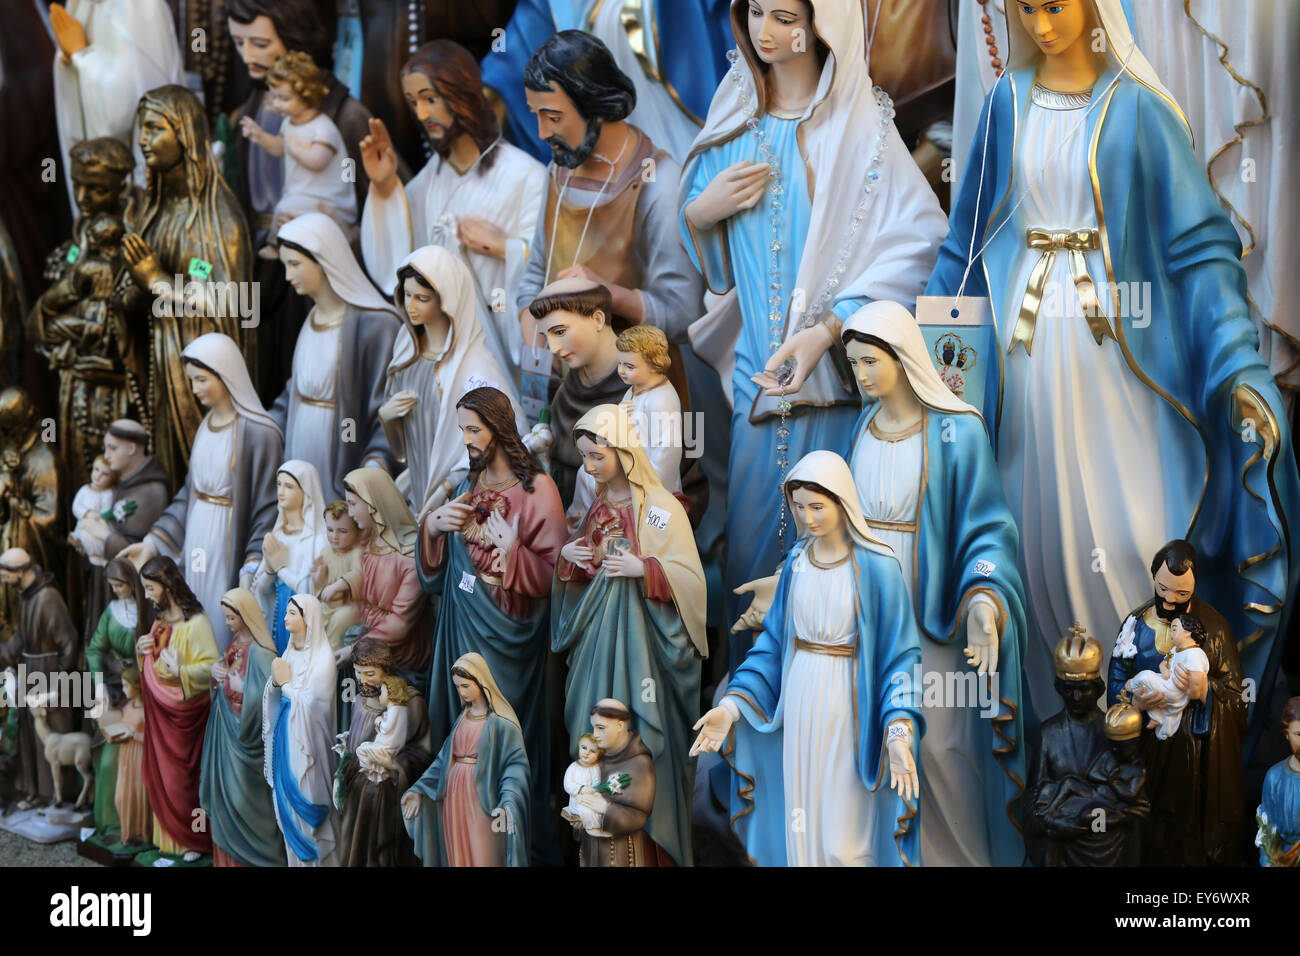 Catholic Religious items, figurines of saints in one of the